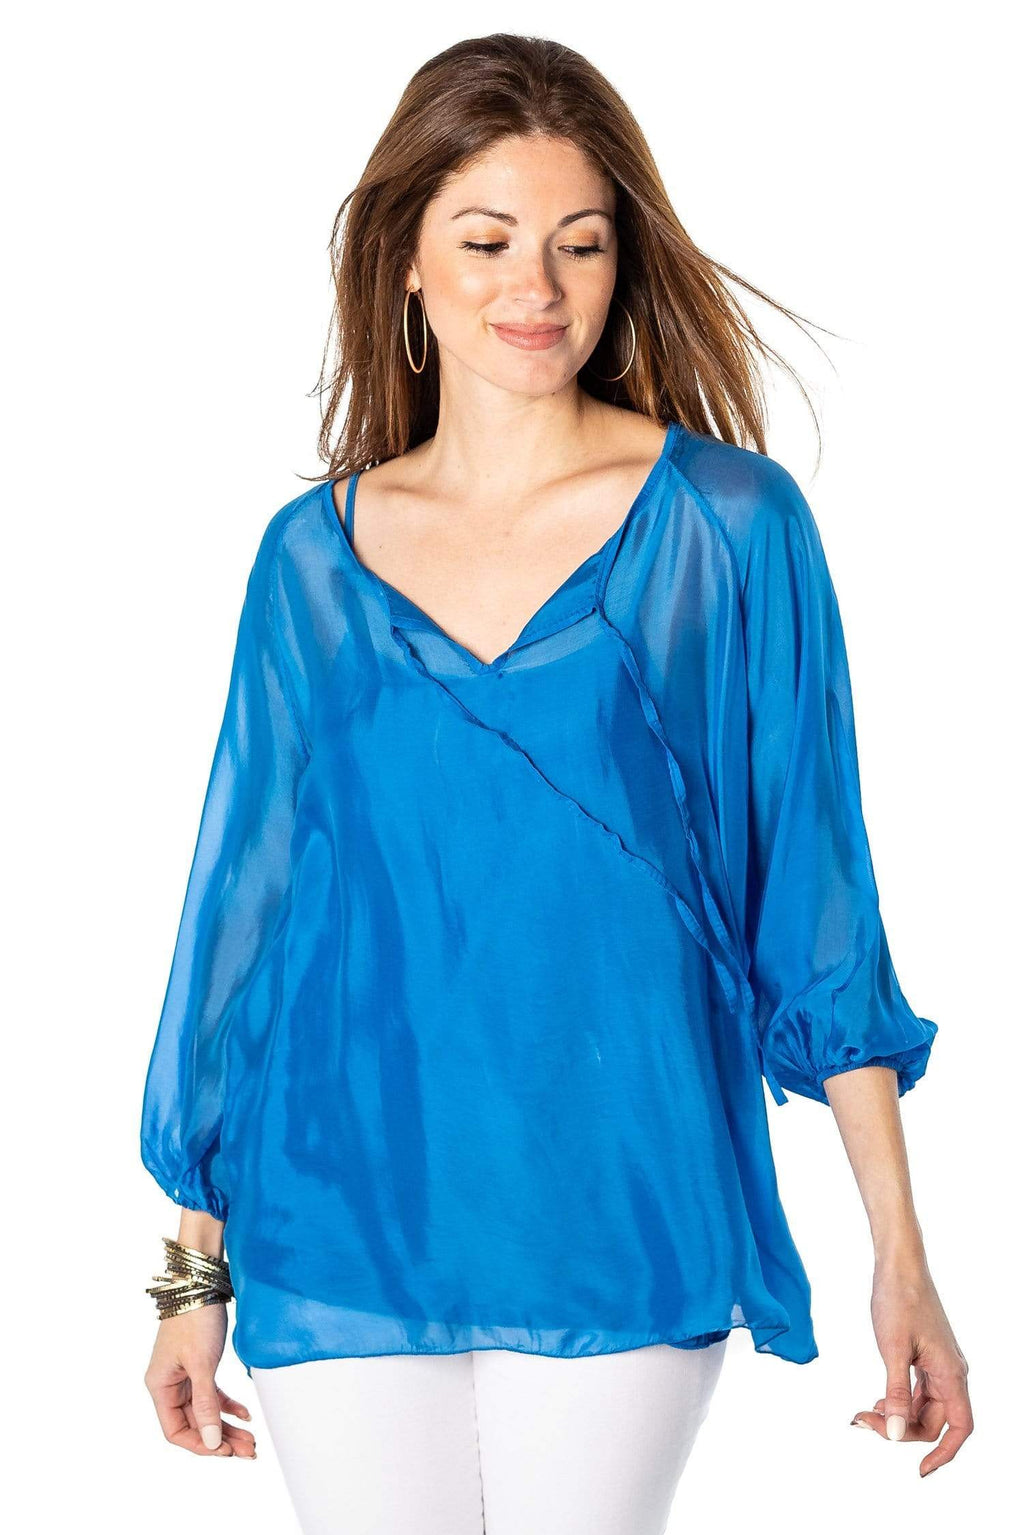 shop-sofia Casey Royal Top Sofia Collections Italian Silk Linen Satin